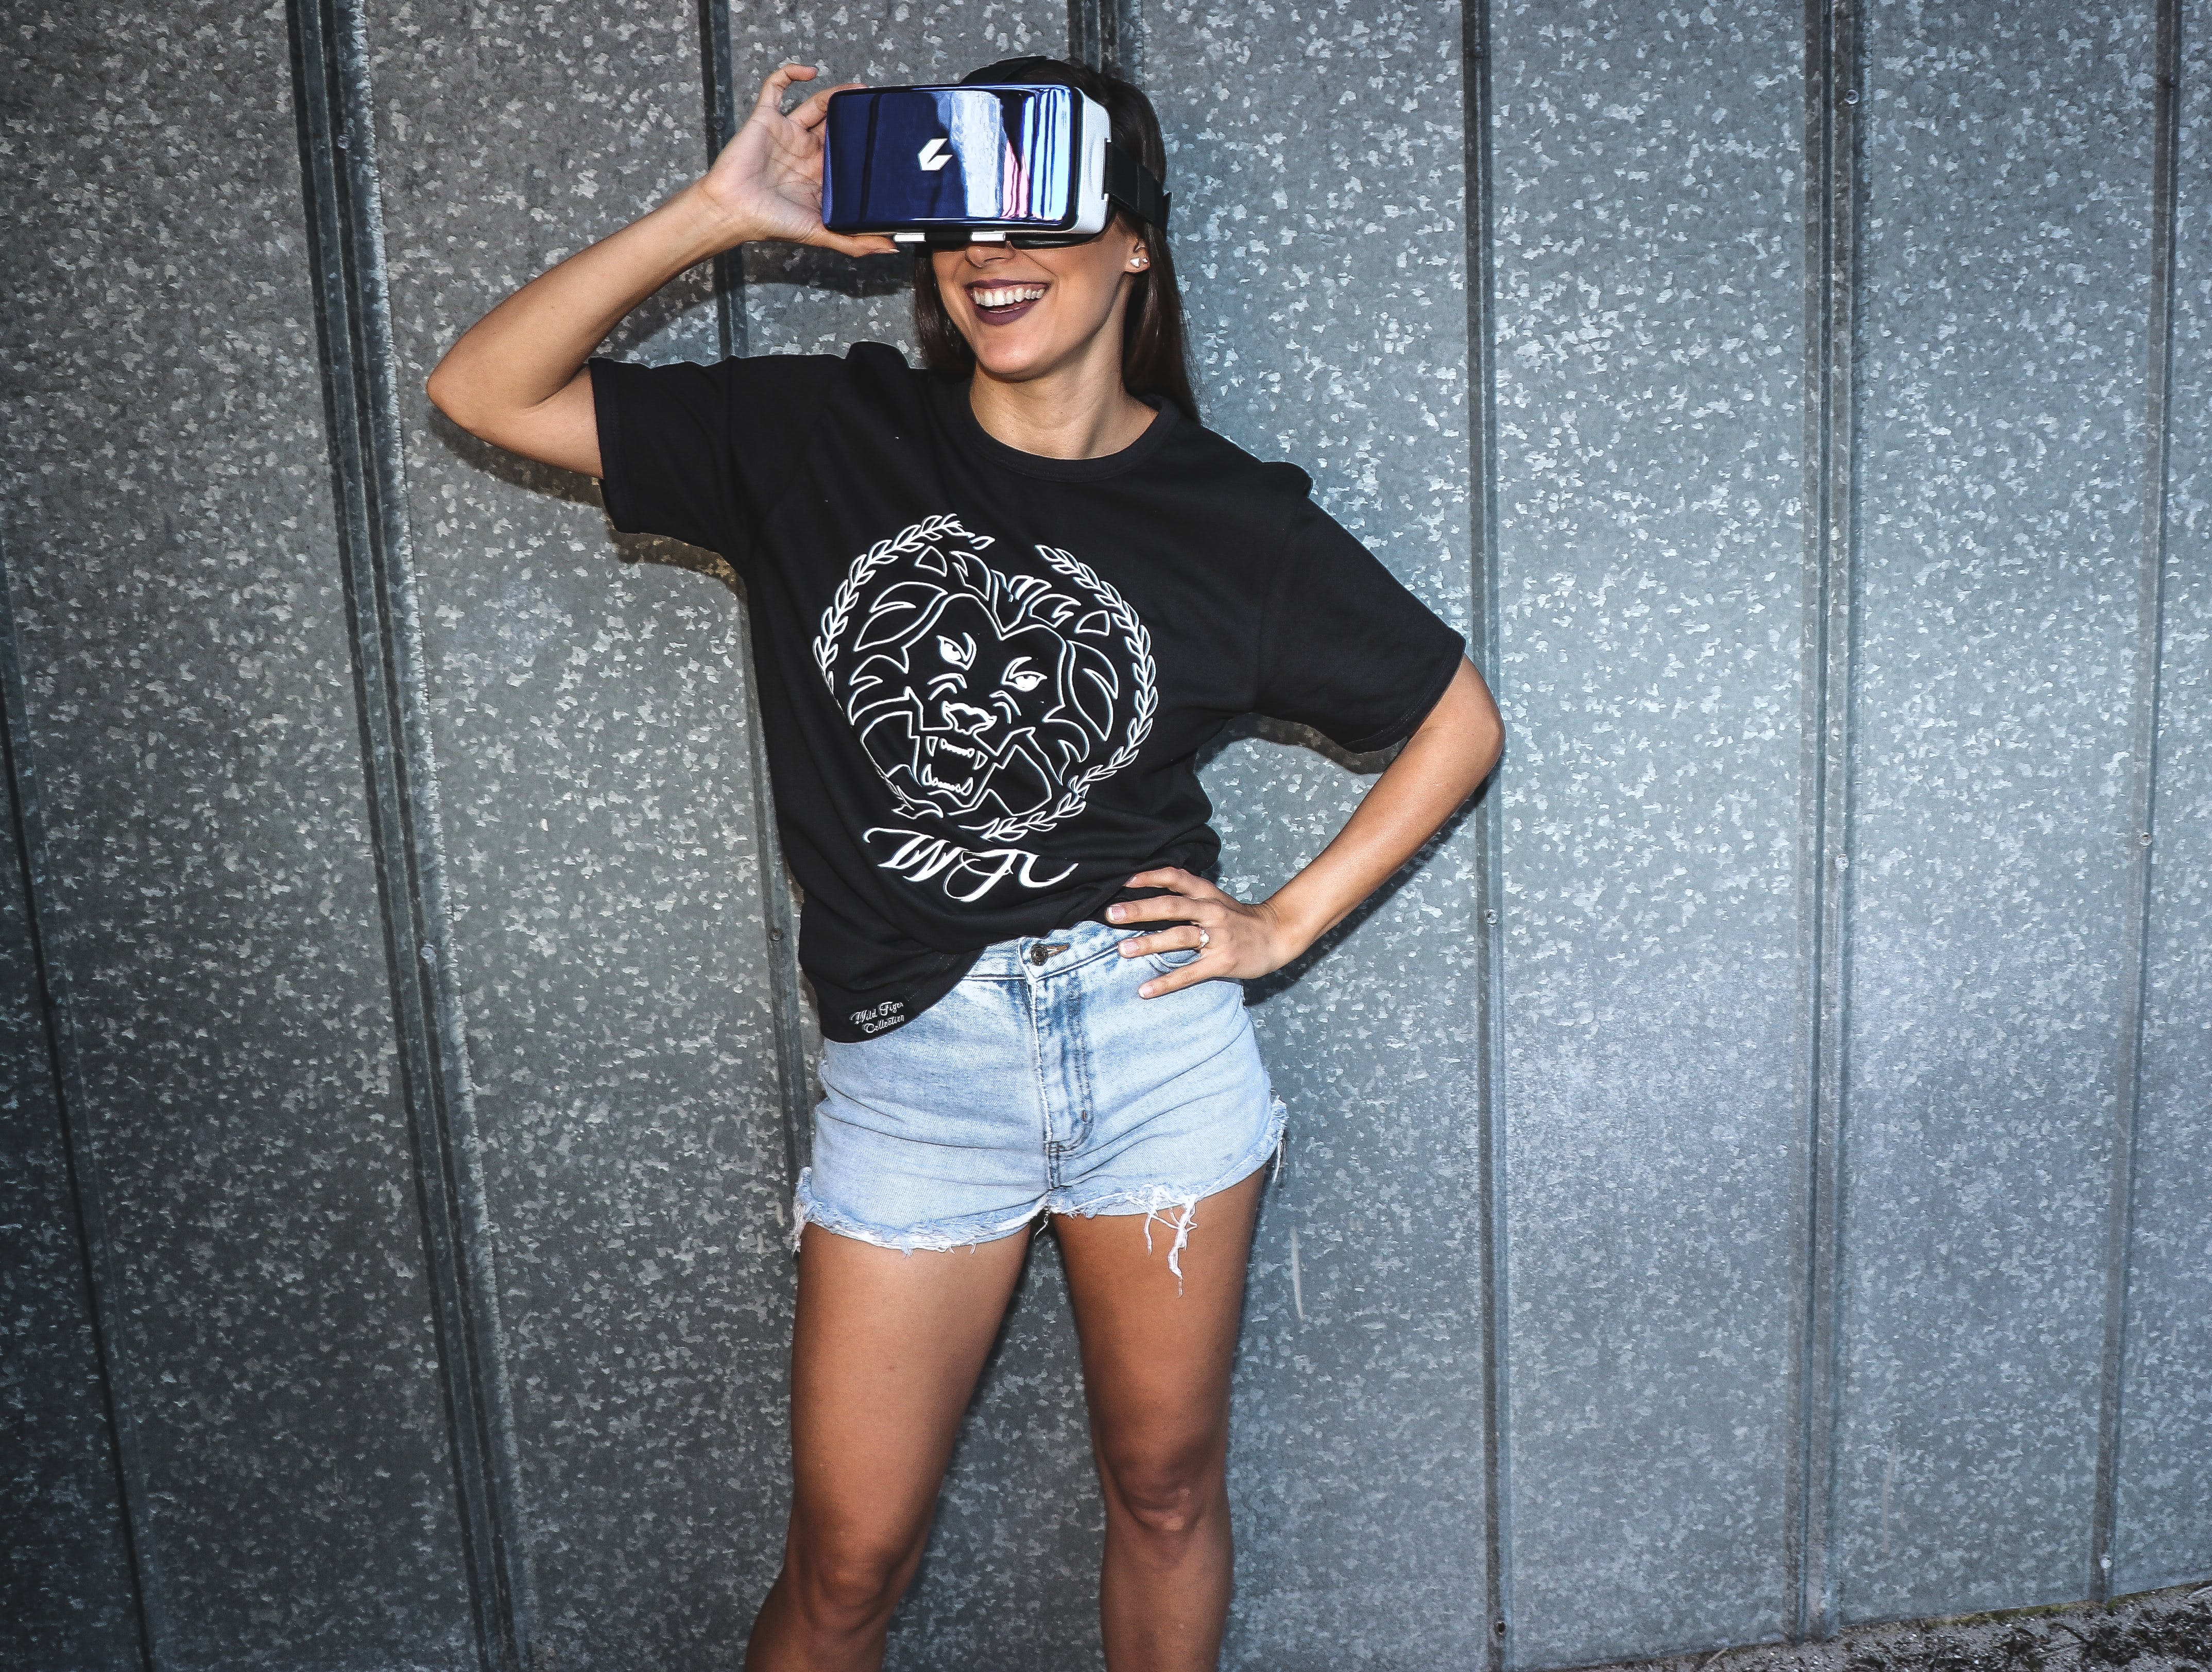 Woman in Black T-shirt Standing and Smiling While Using a Virtual Reality Glasses